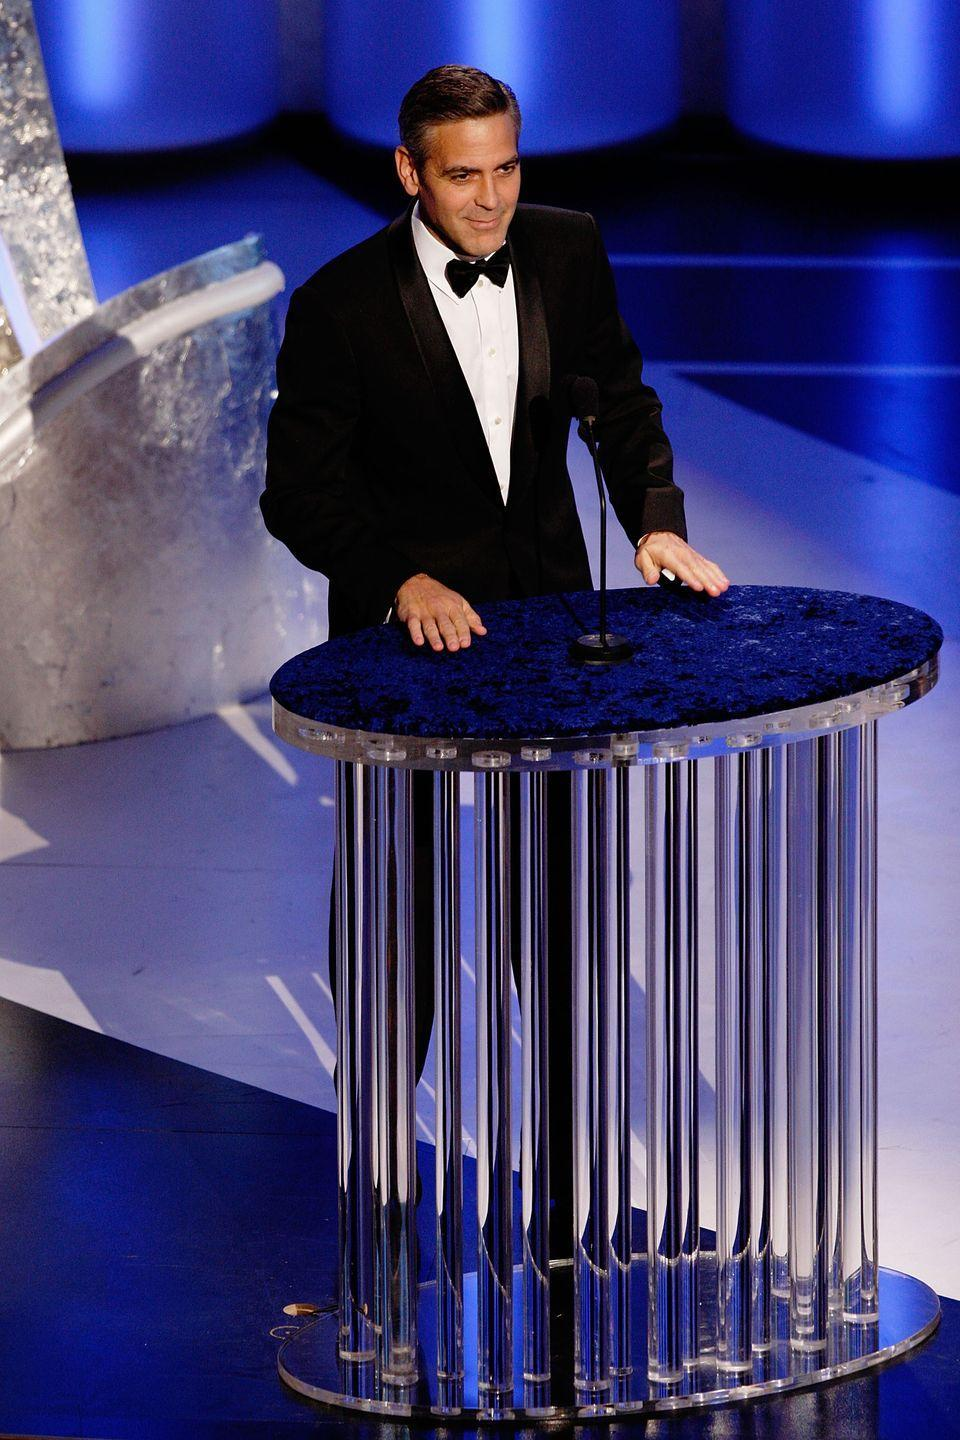 <p>Clooney presents at the 80th Academy Awards on February 24, 2008.</p>